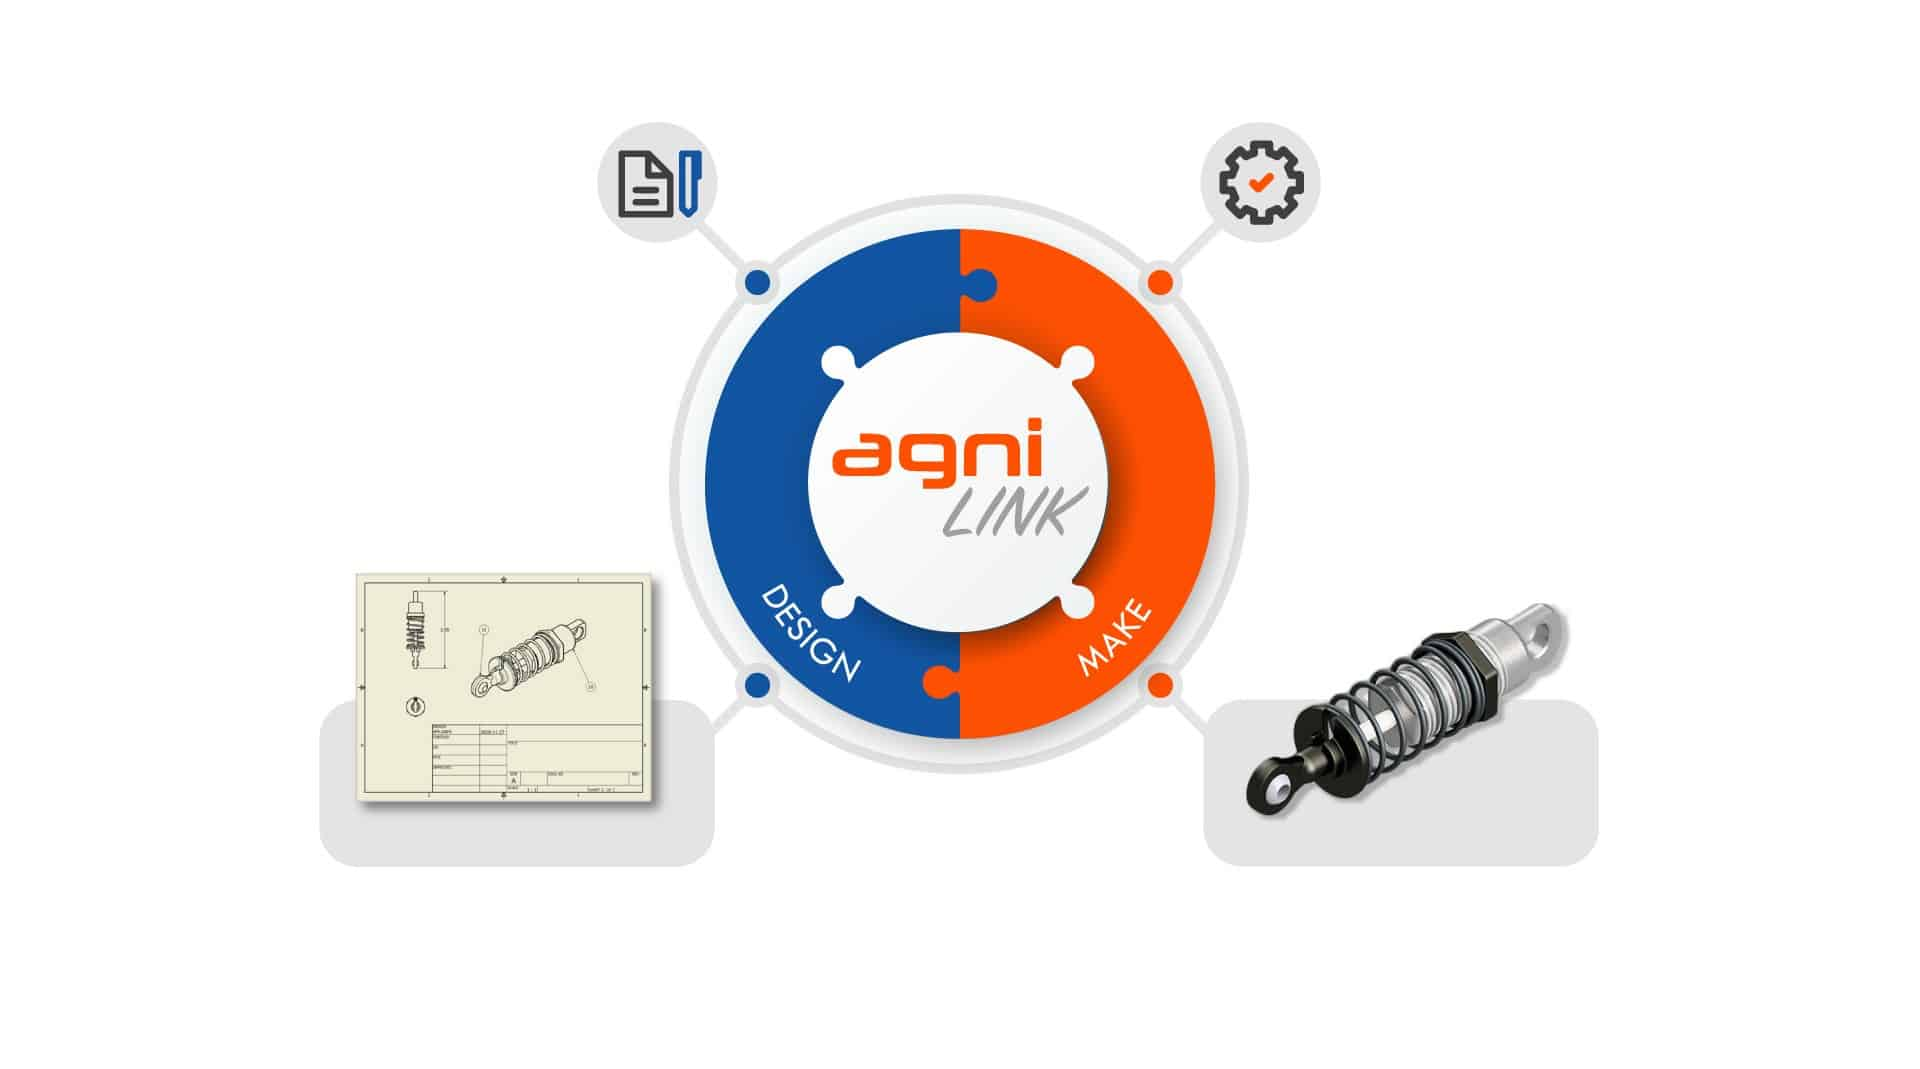 Agni Link enables real-time data transfer from CAD, PDM and PLM to ERP systems